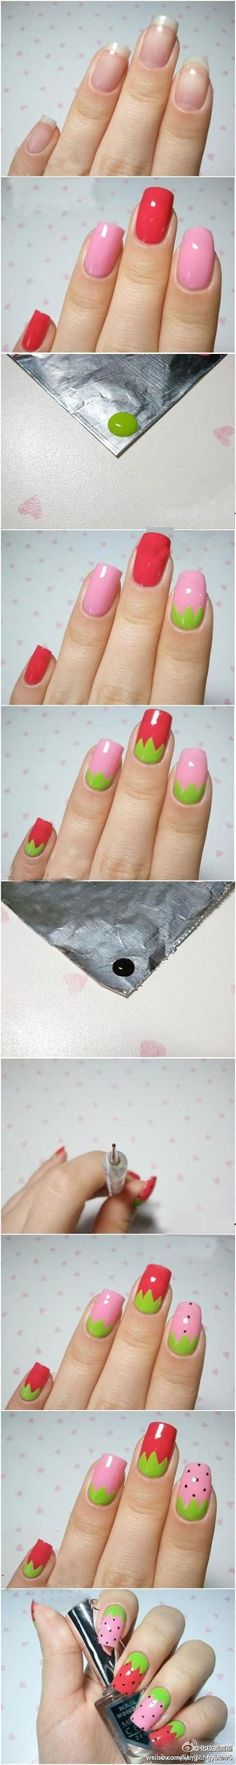 watermelon nails yay